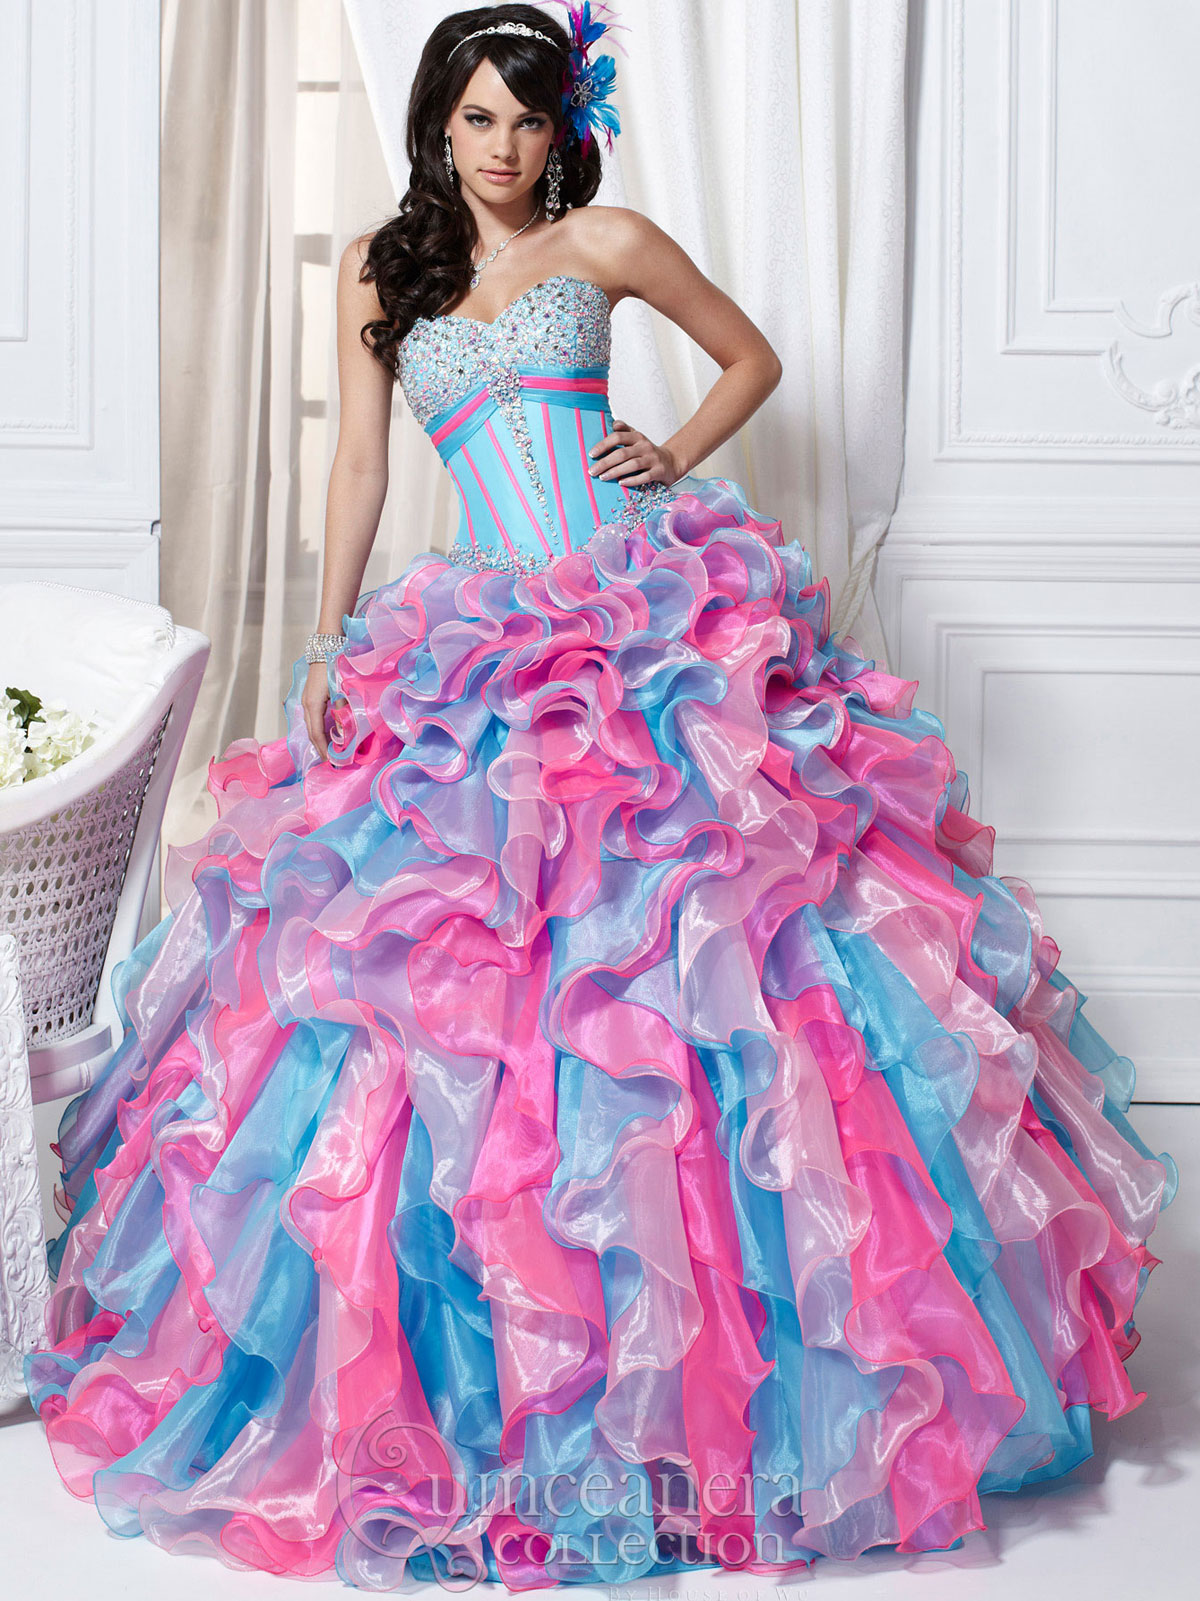 d5dcdb81c95 Sweetheart Ruffled Skirt Quinceańera Collection Quince Dress  26706Authorized Tiffany Quinceanera Retailer